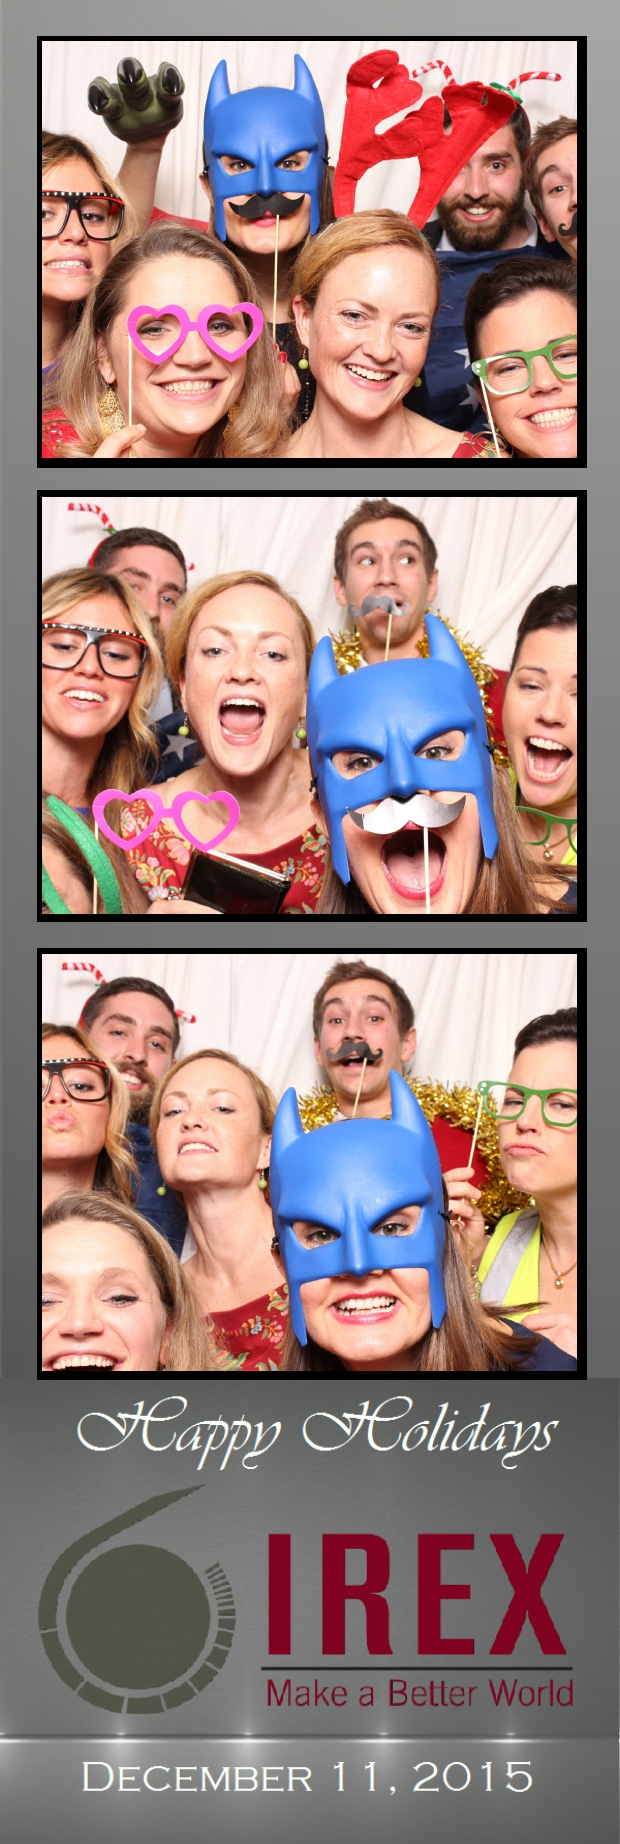 Guest House Events Photo Booth Strips IREX (42).jpg